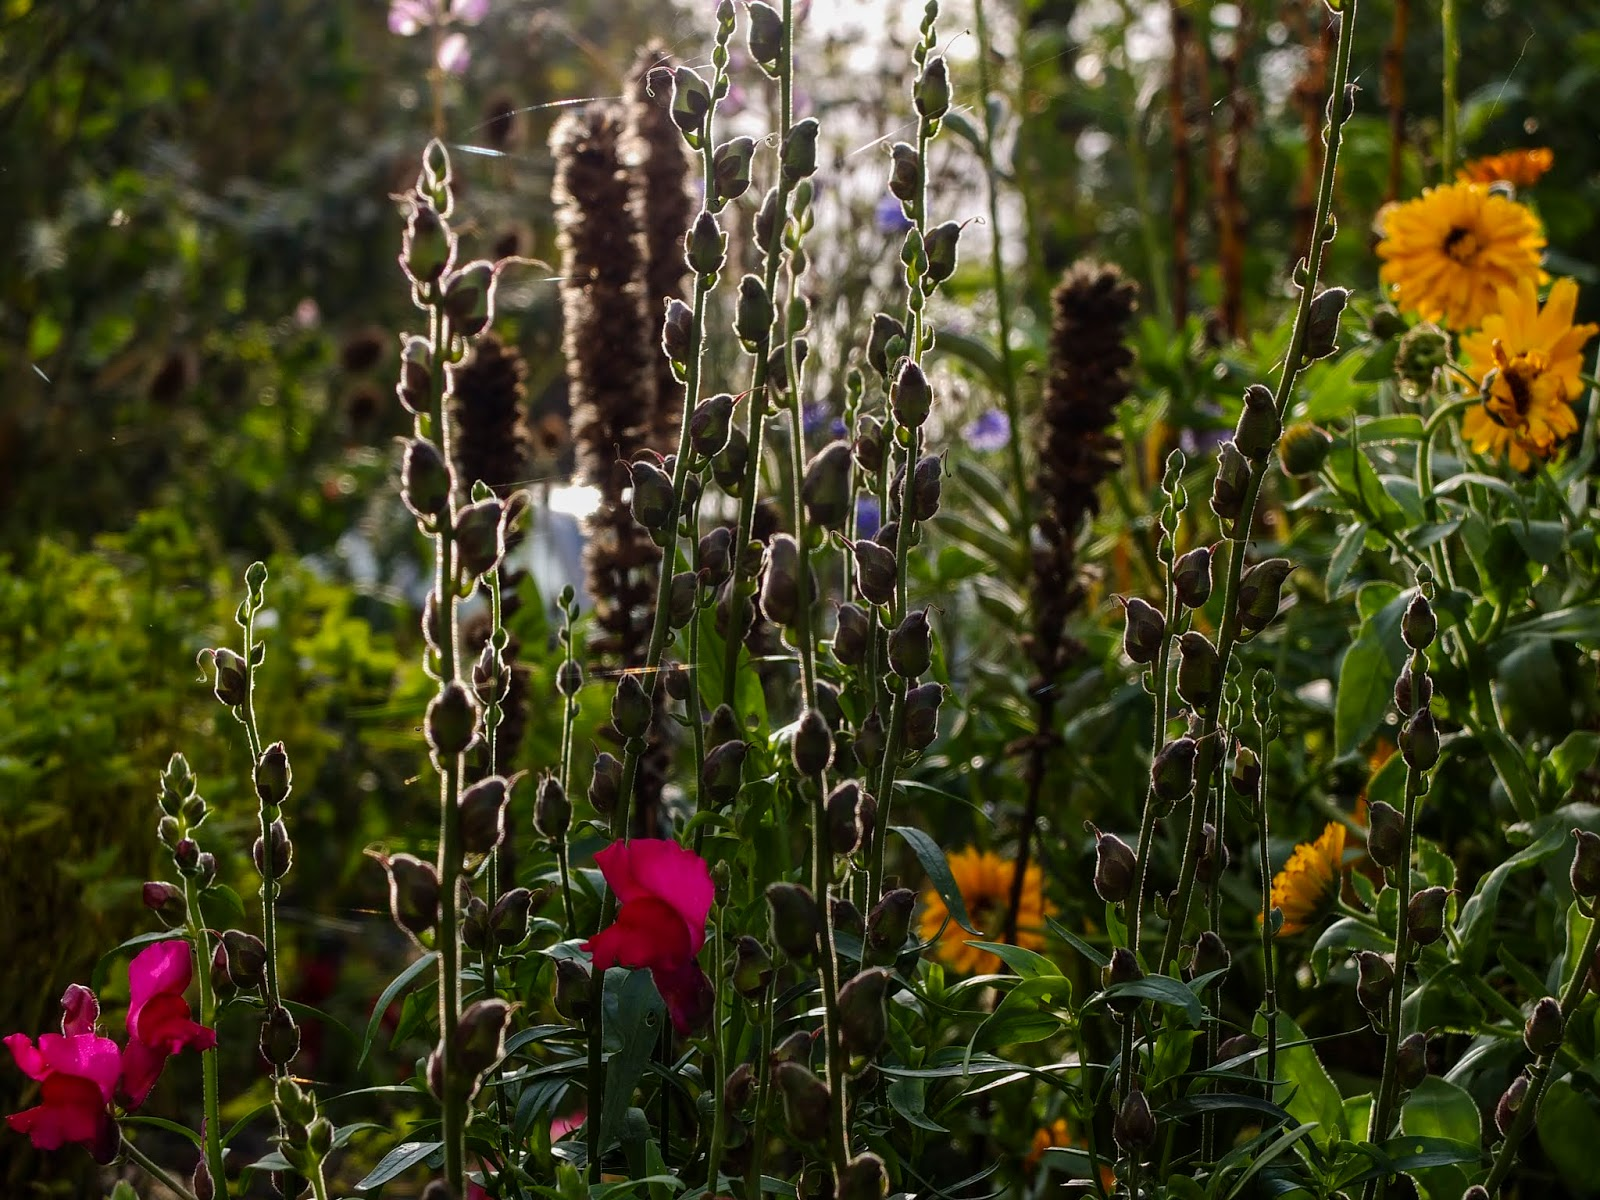 Sunset light on a flower garden of pink Snapdragons, their seed pods and yellow Calendulas.